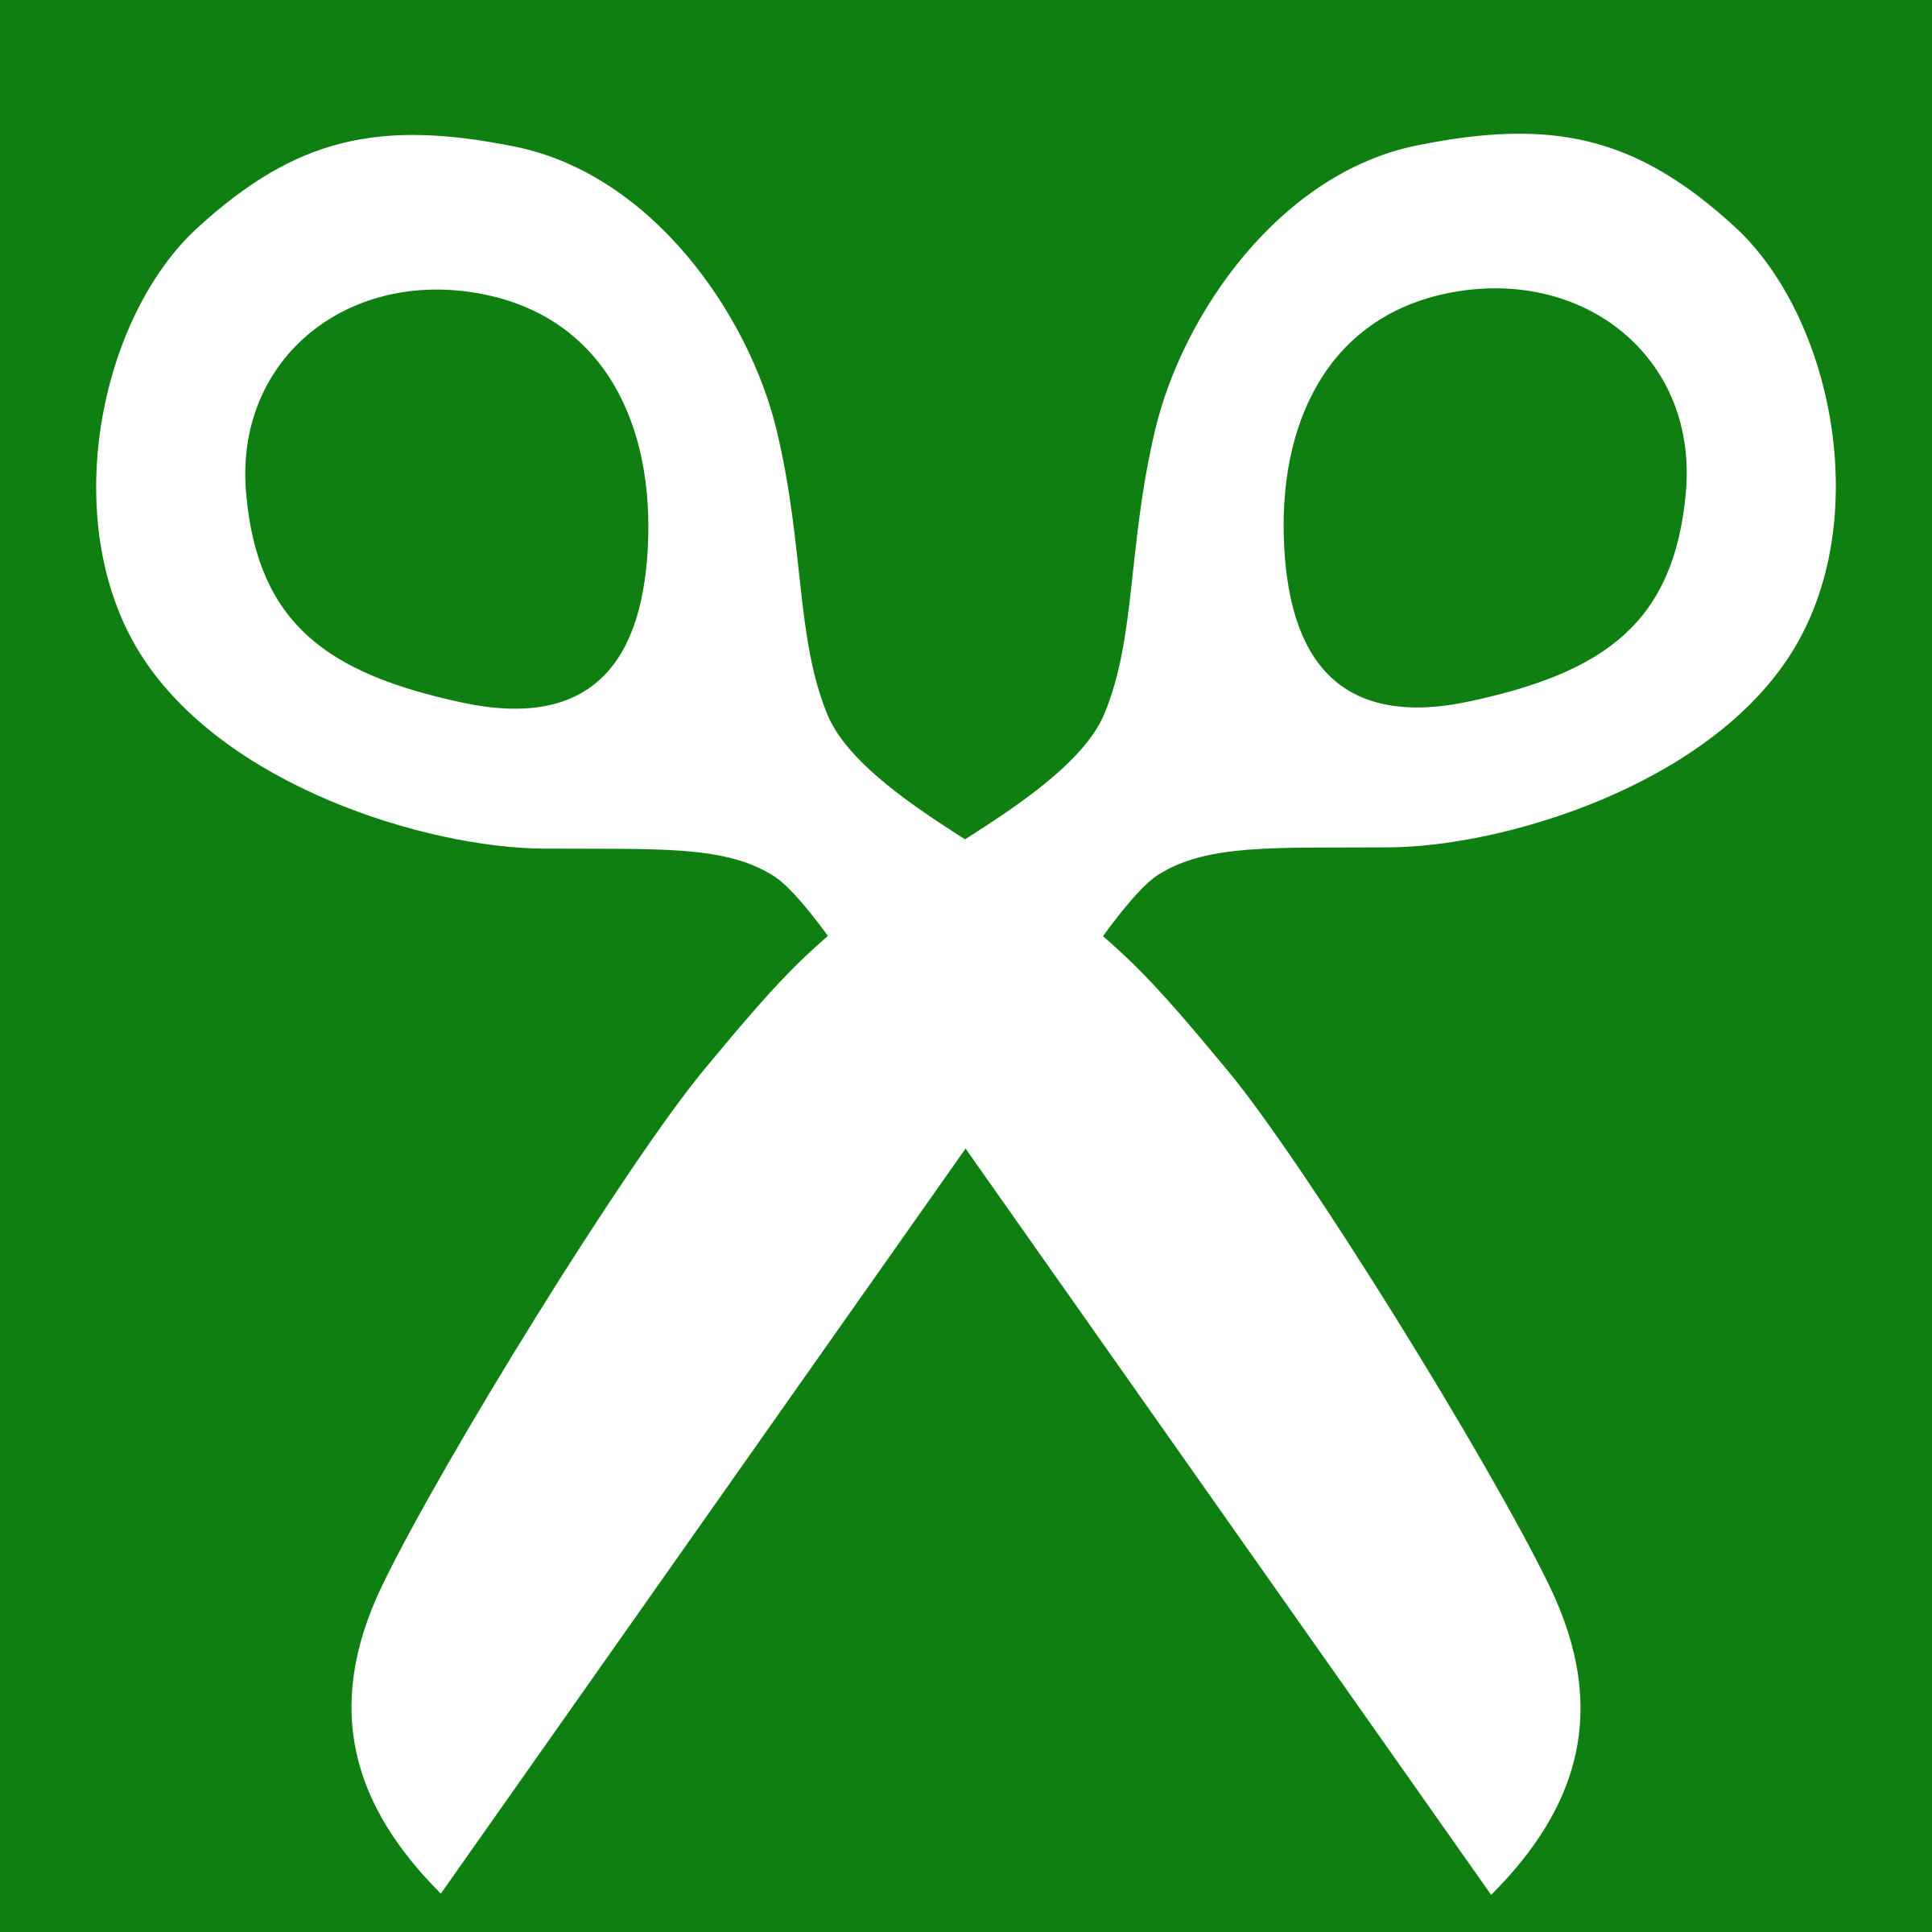 Info Symbol in Green Circle by drpeternetz